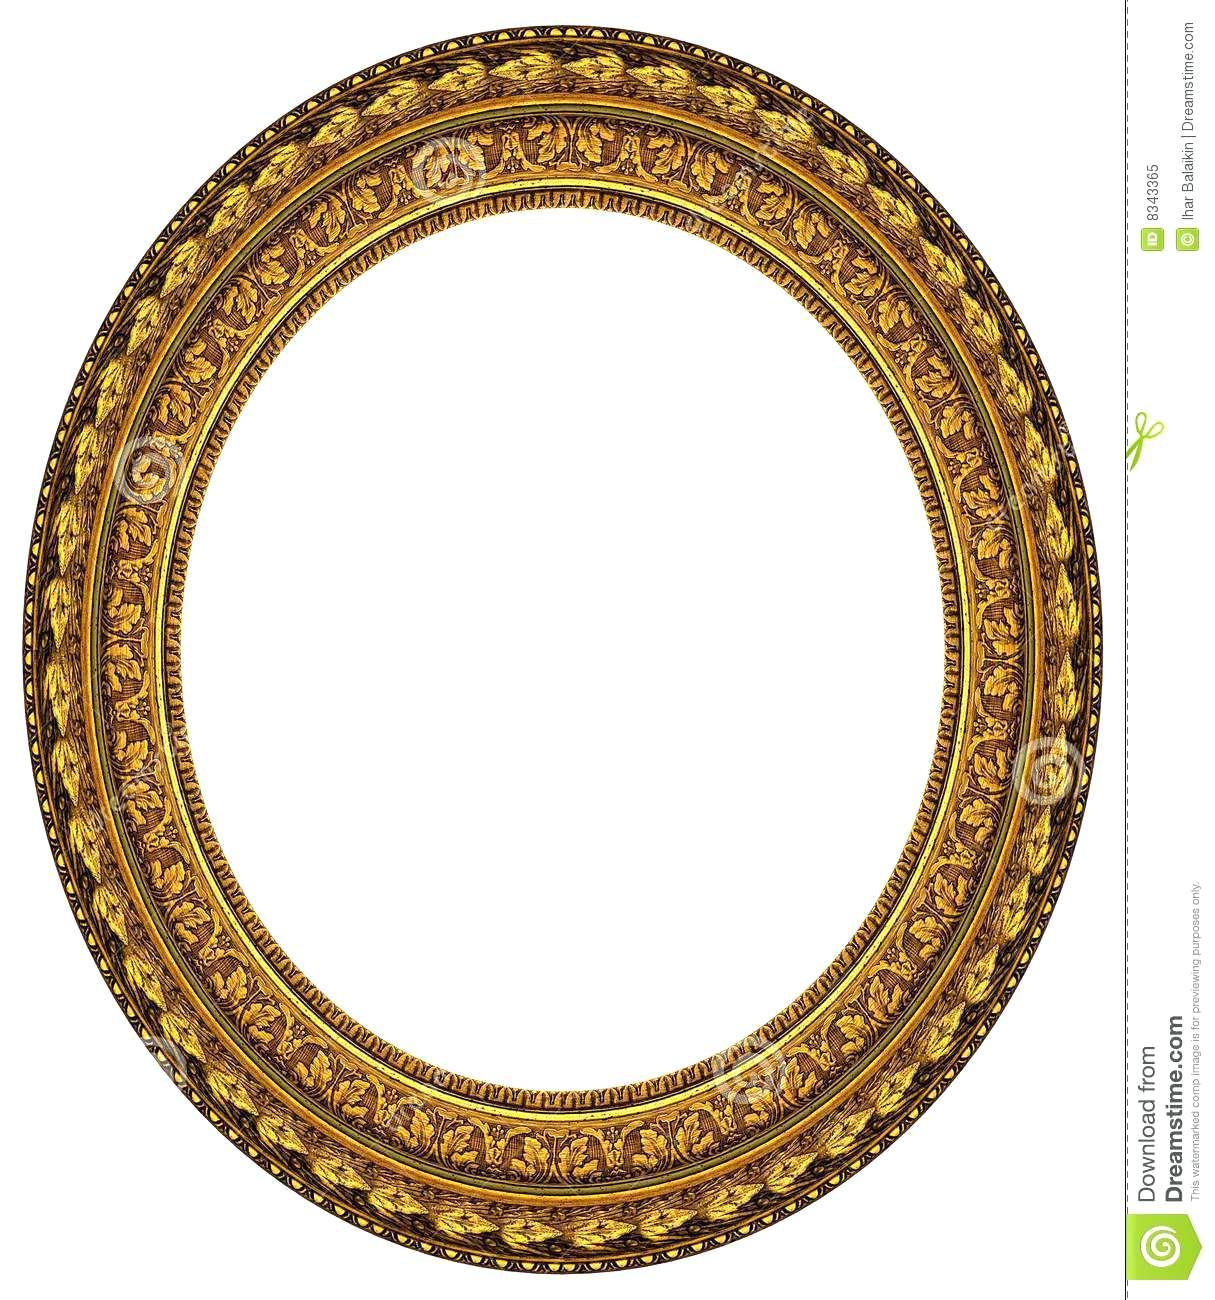 b739abbcf33d Antique Oval Frame